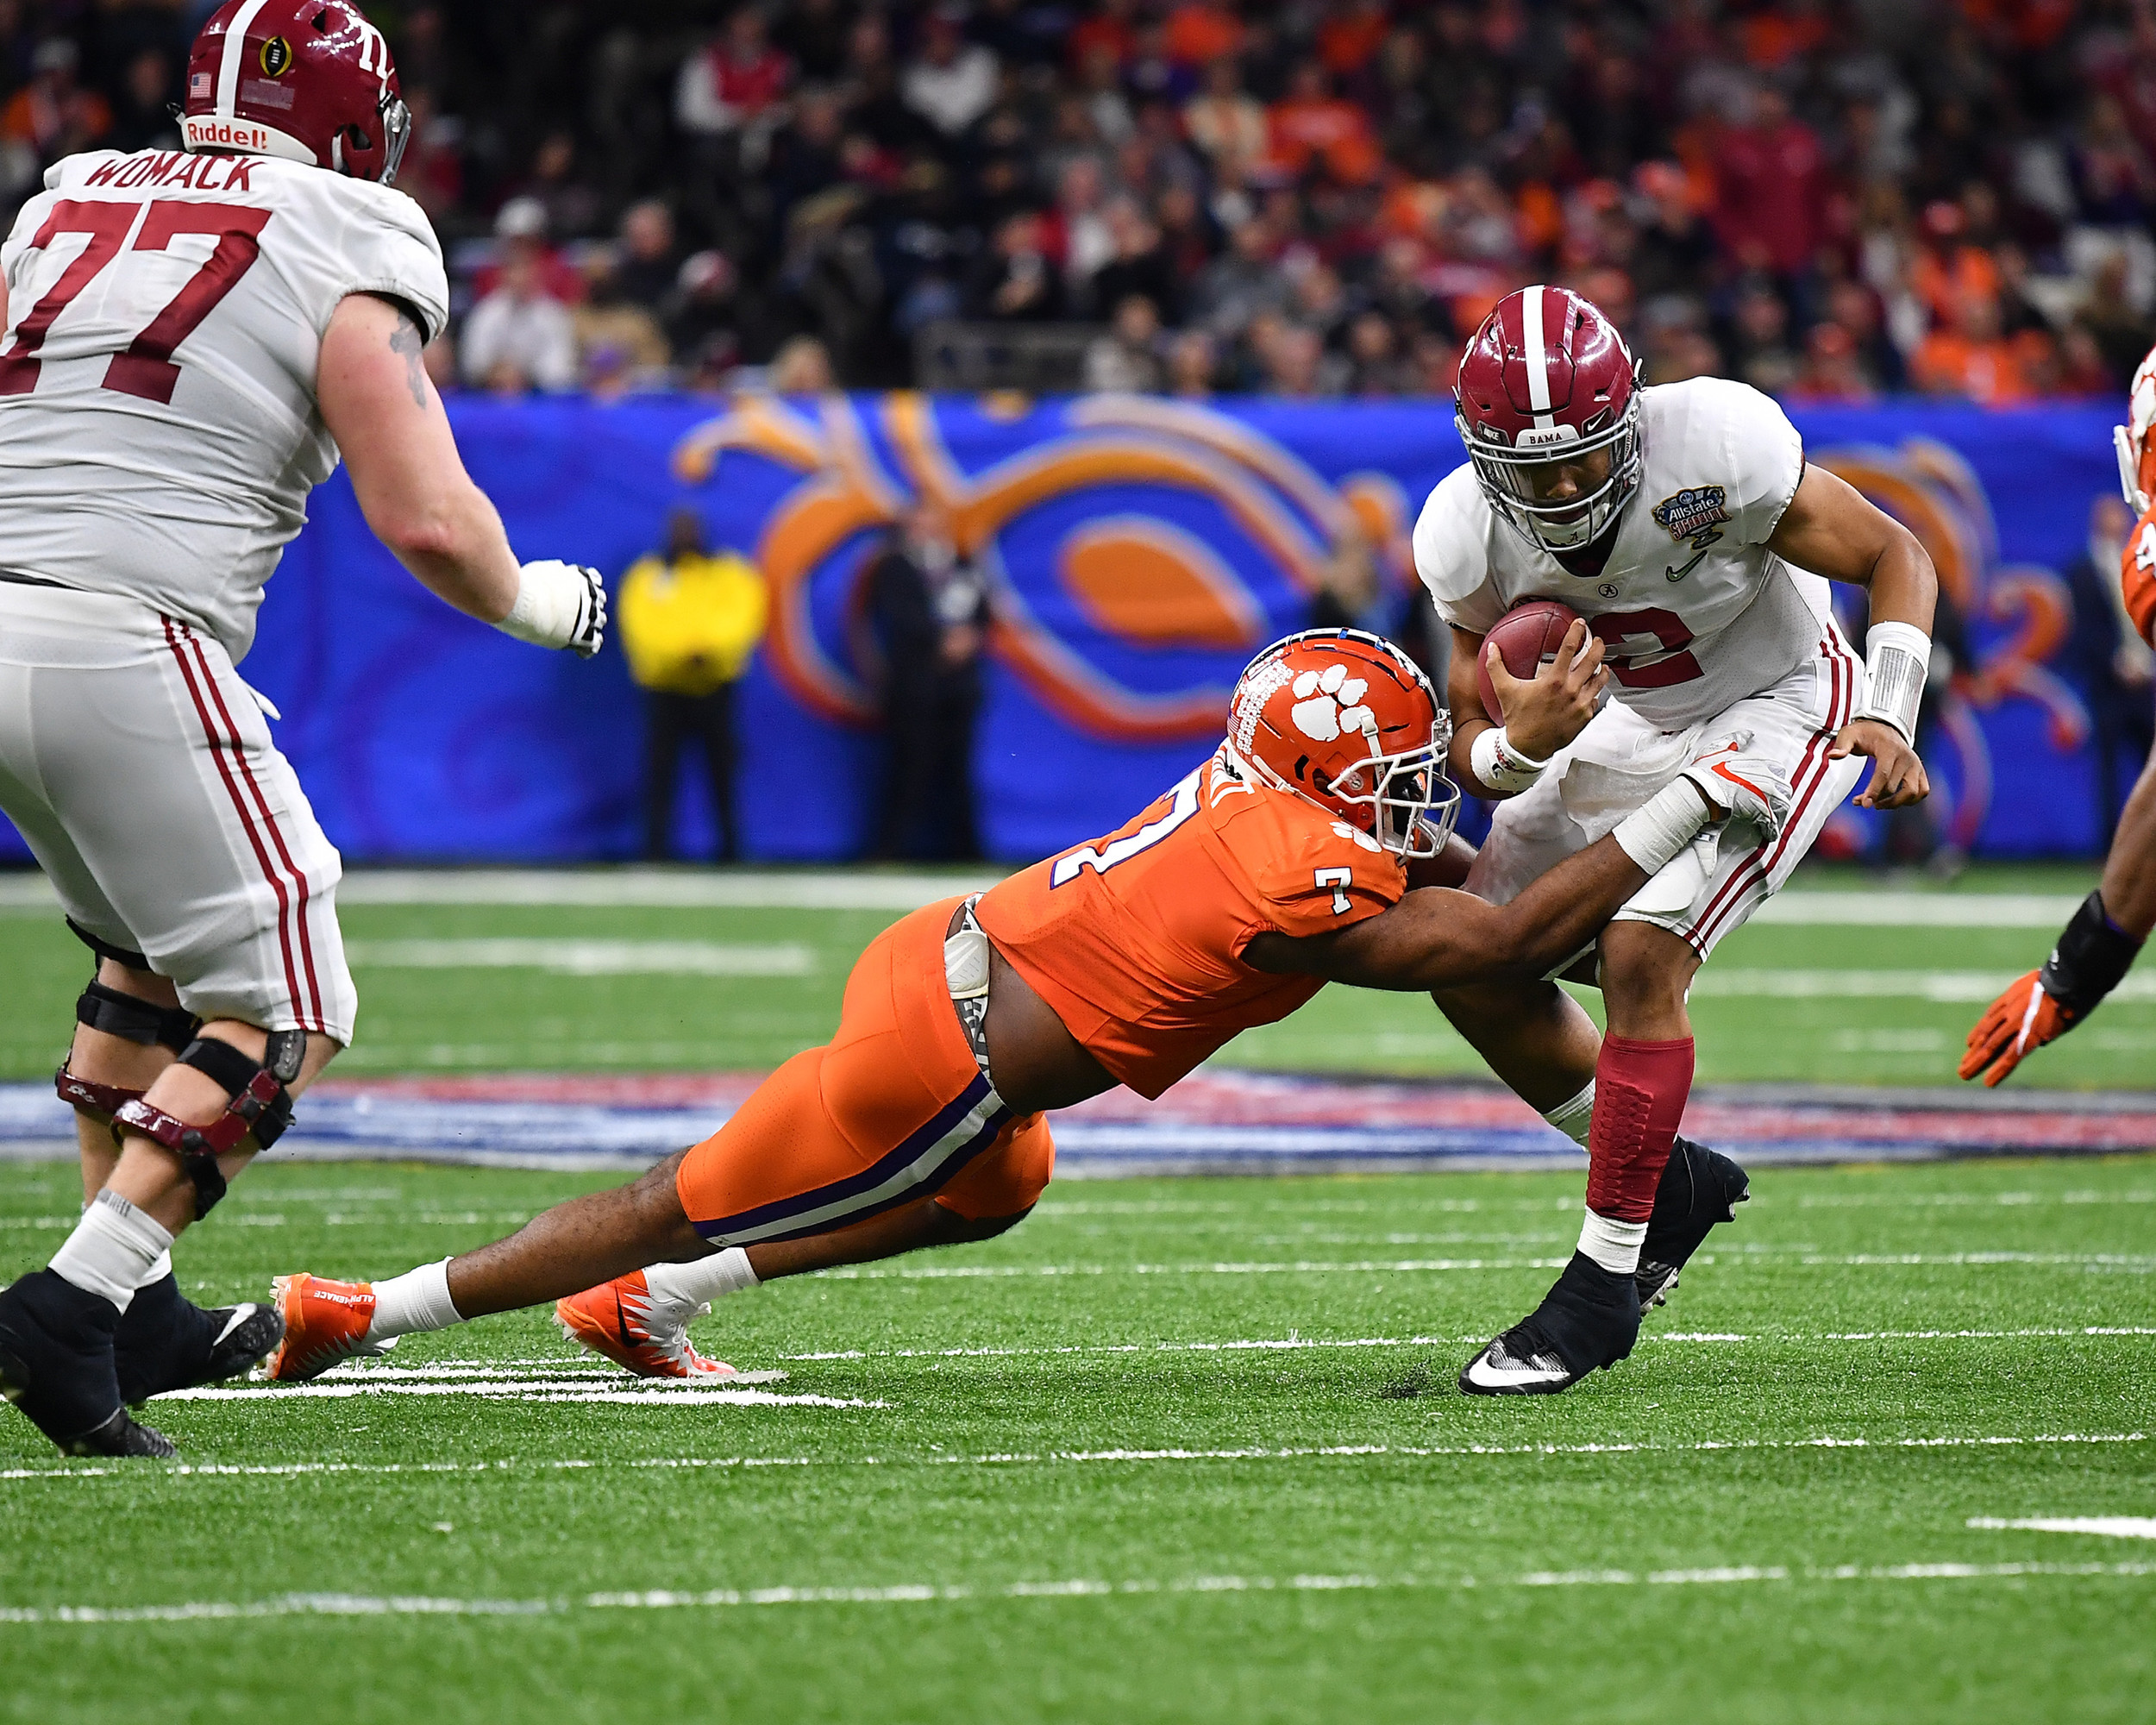 Alabama Crimson Tide quarterback Jalen Hurts (2) is tackled in the second quarter of the 2018 AllState Sugar Bowl on Jan. 1, 2018, at the Mercedes-Benz SuperDome in New Orleans, La. Alabama won the game 24-6. (Photo by Lee Walls)